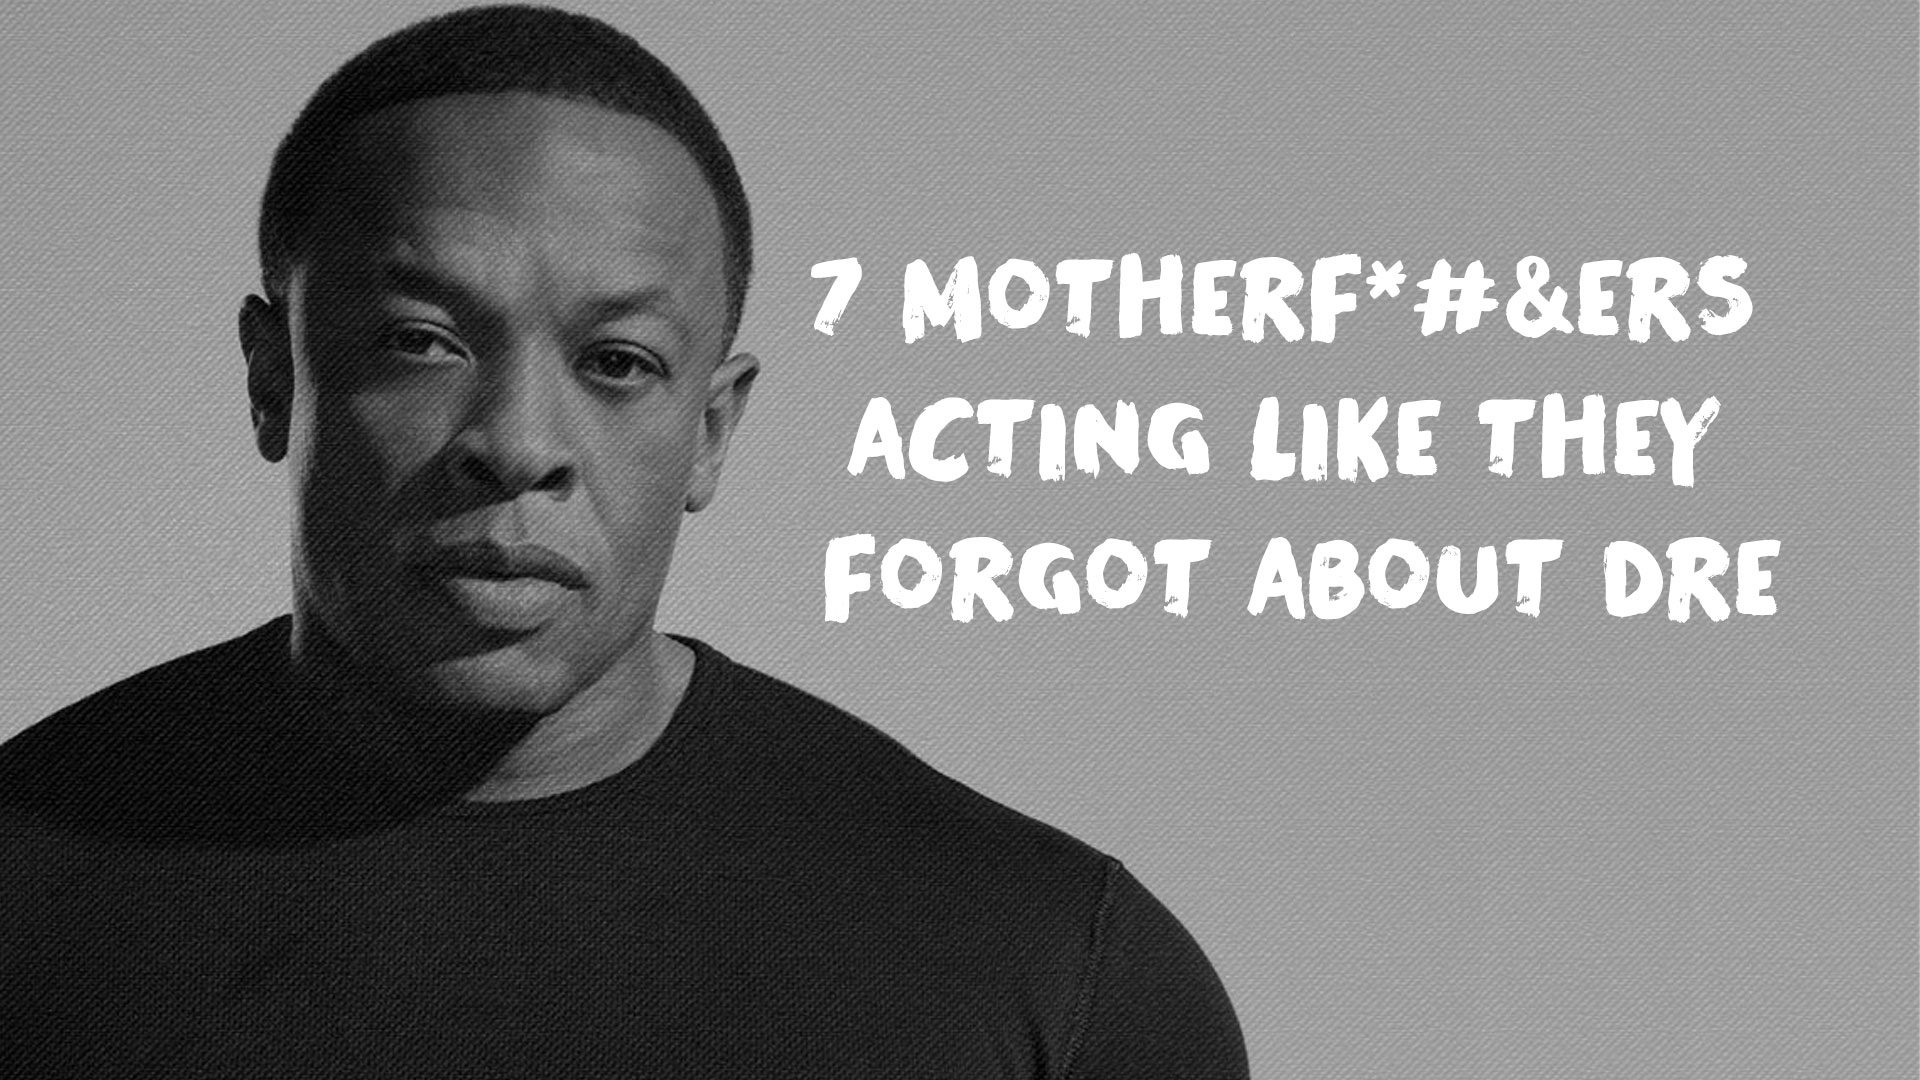 7 Motherf*#&ers Acting Like They Forgot About Dre